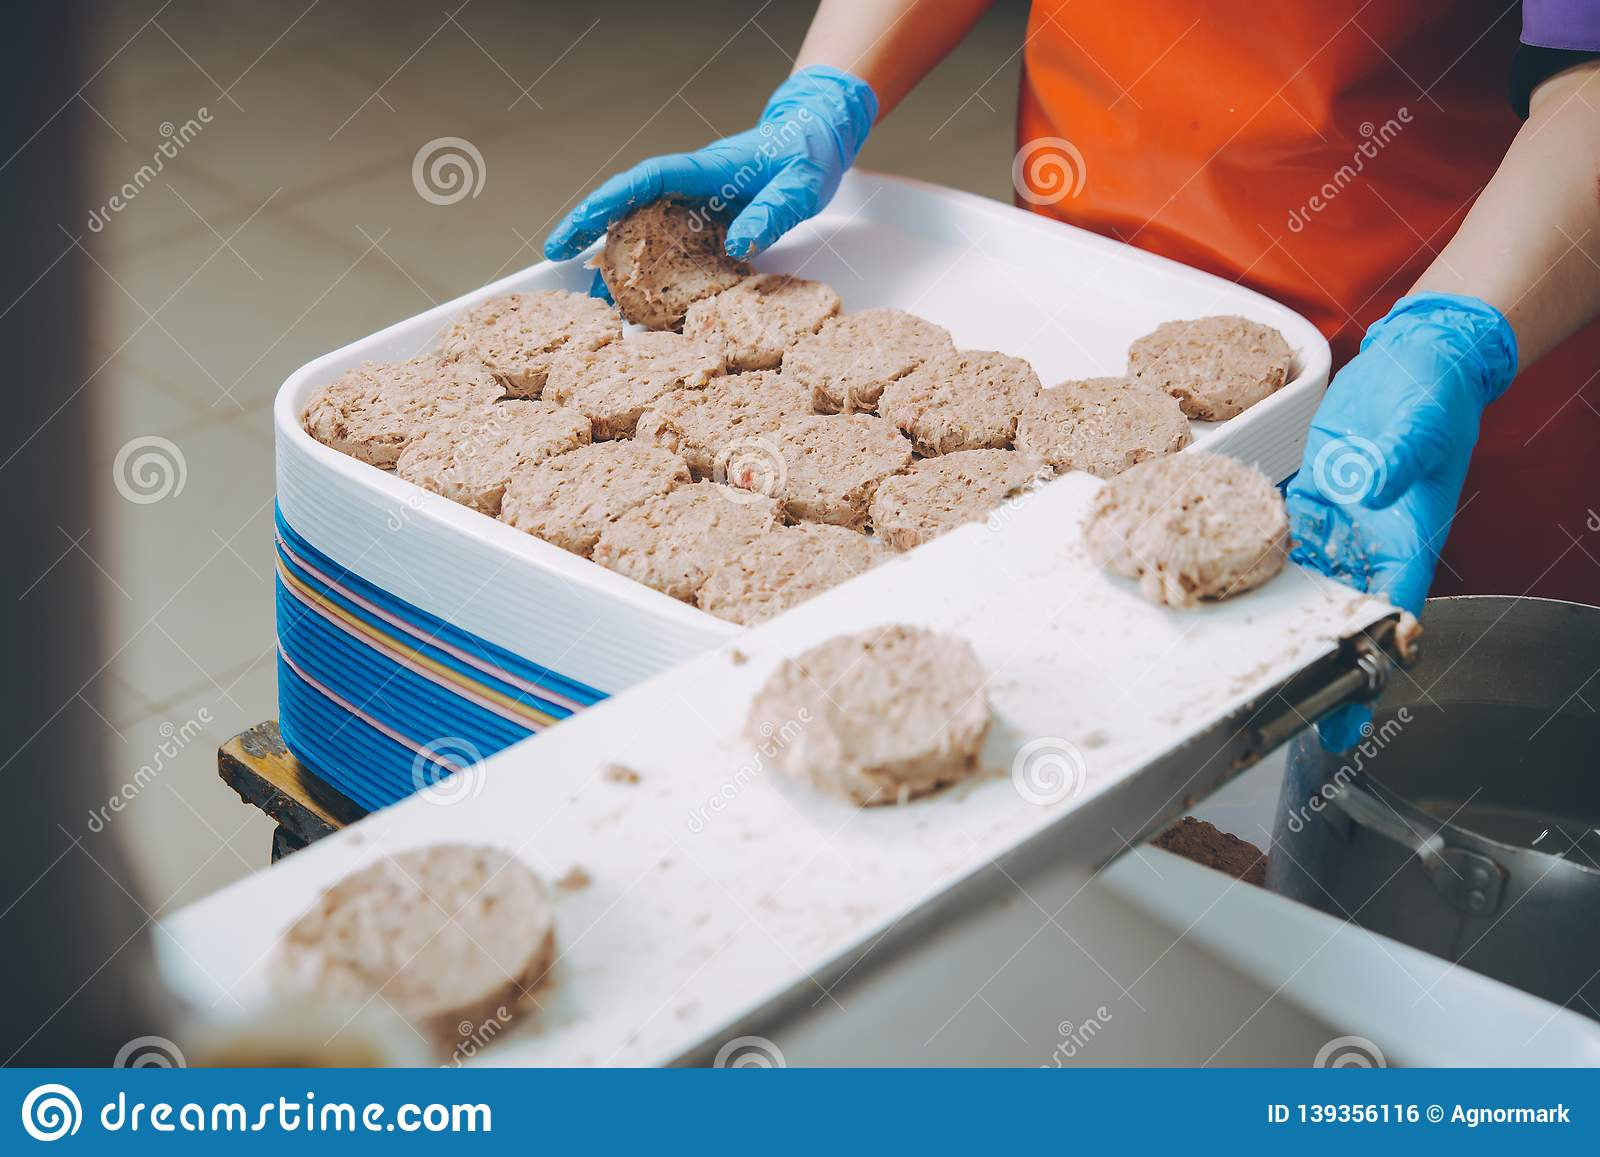 Cutlet making factory